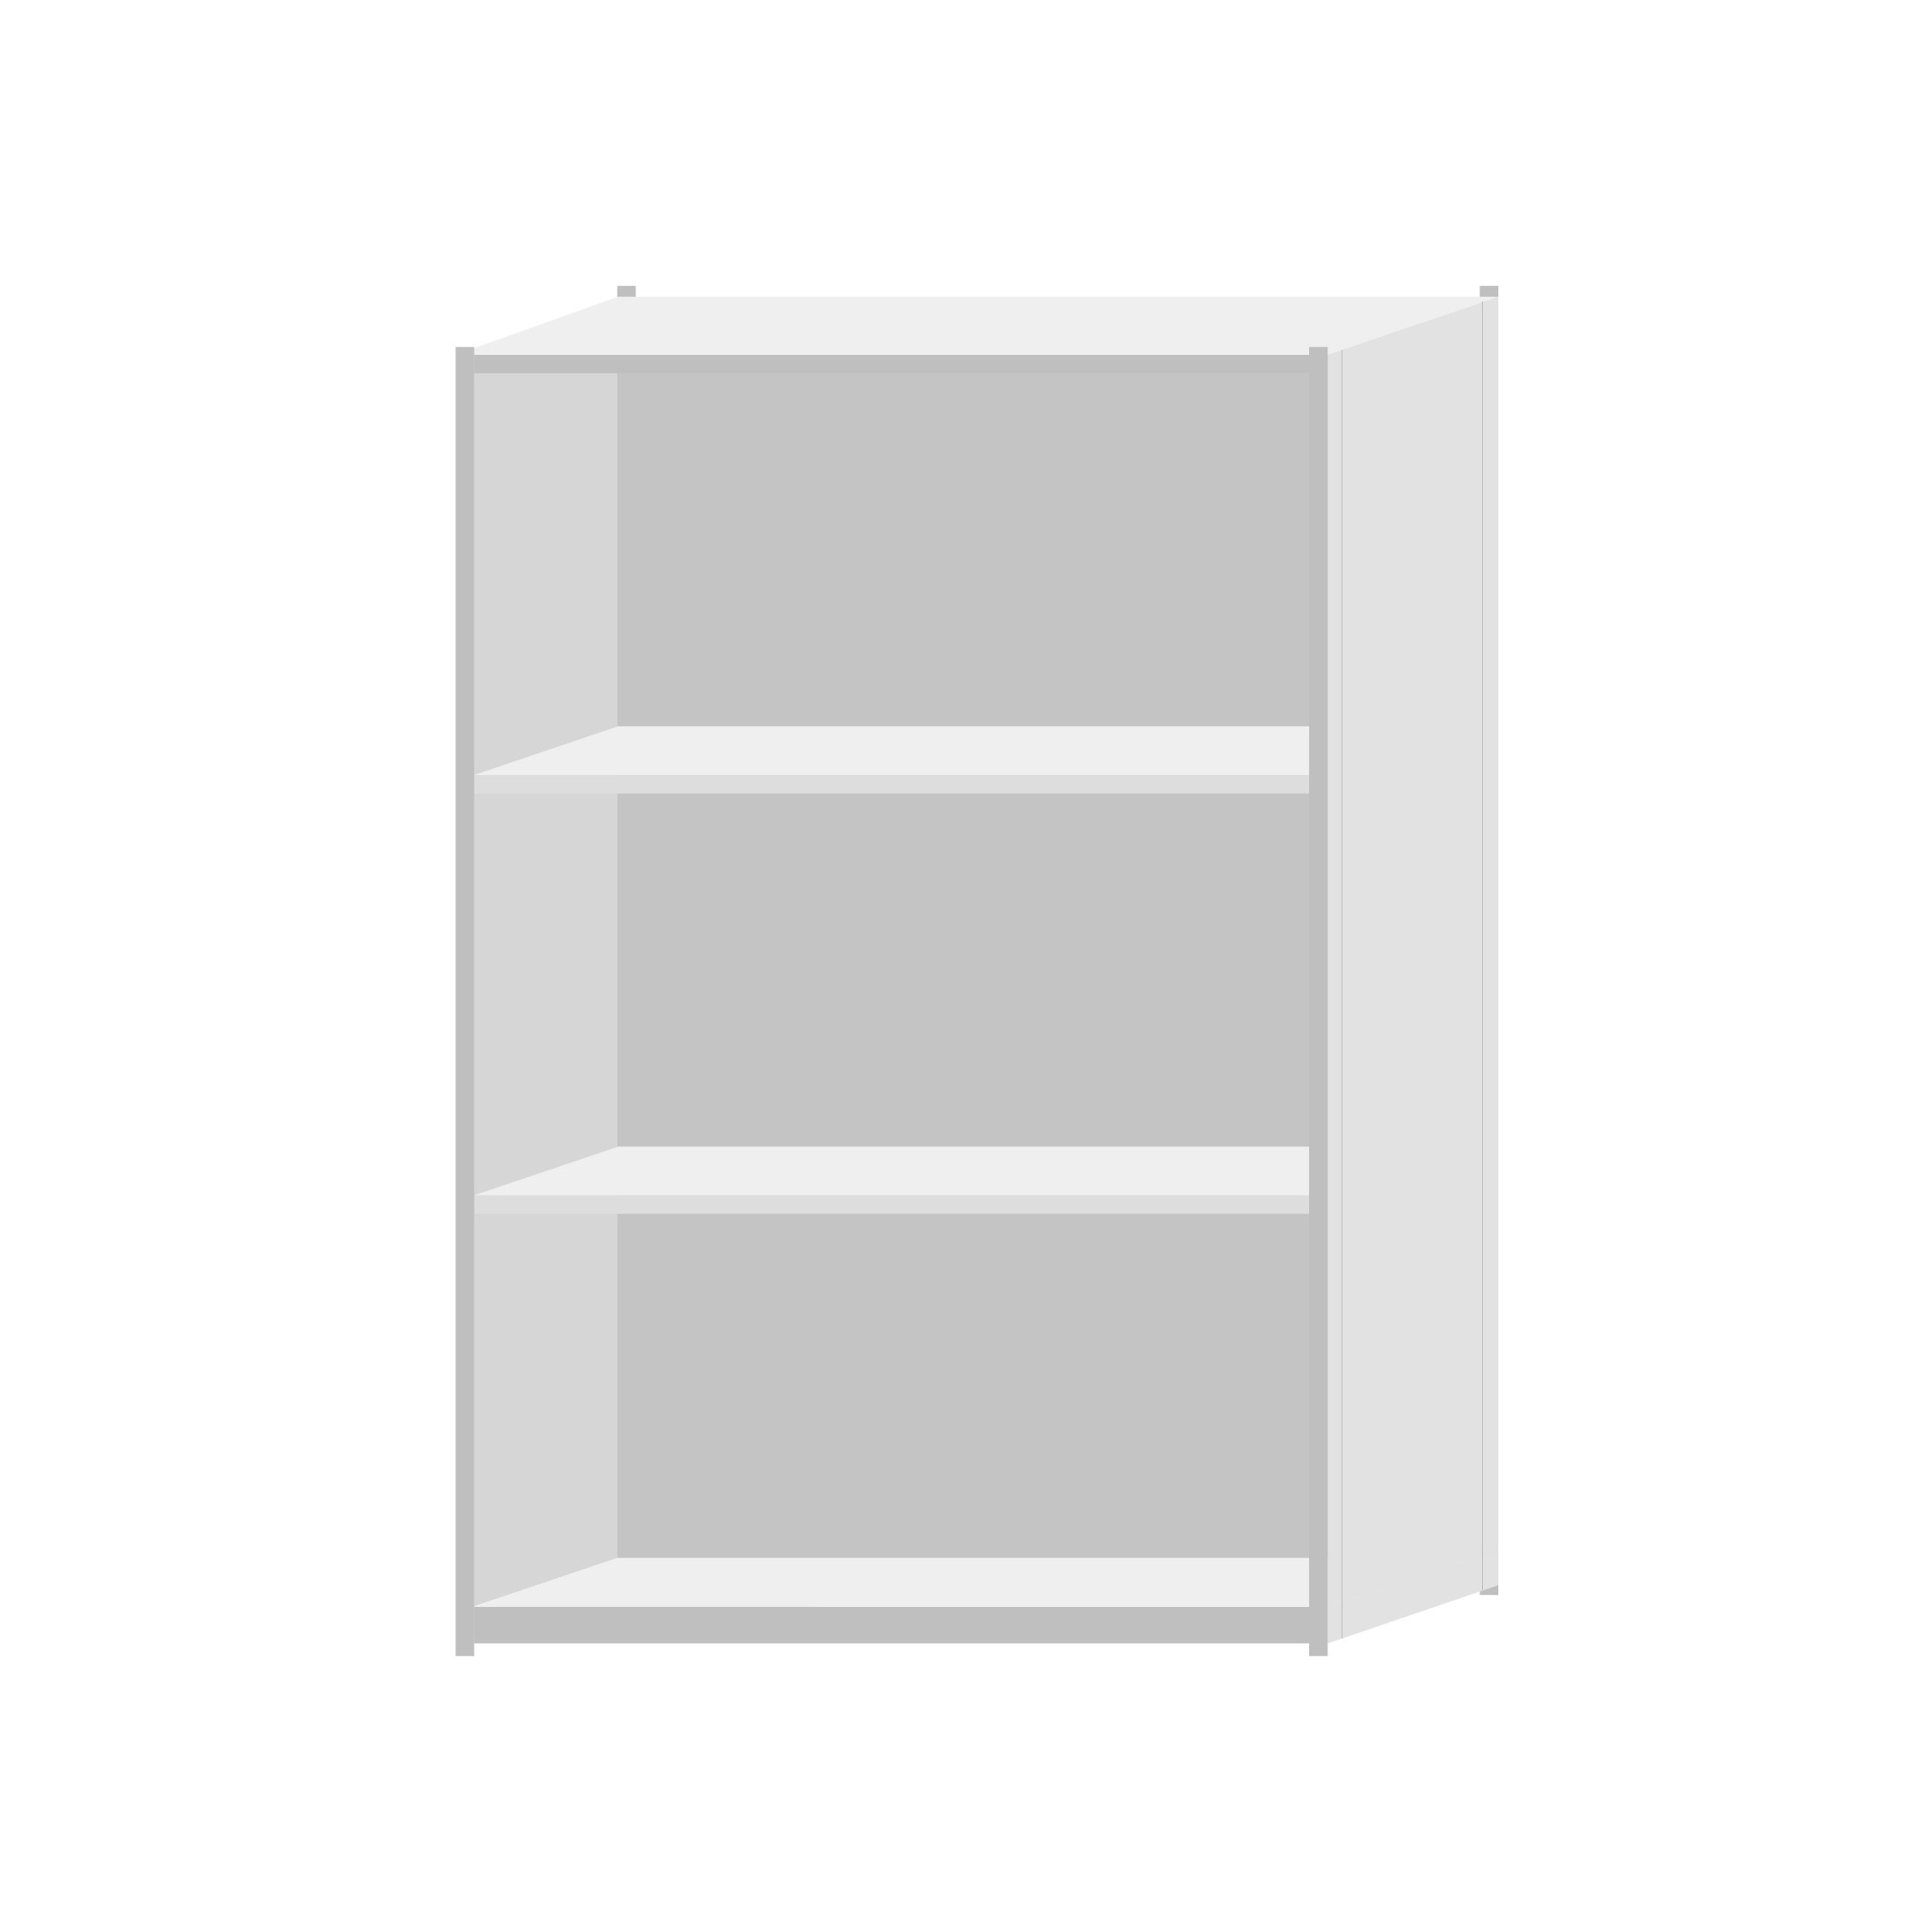 RUT Shelving 1200mm Wide - 4 Levels (Single Sided)